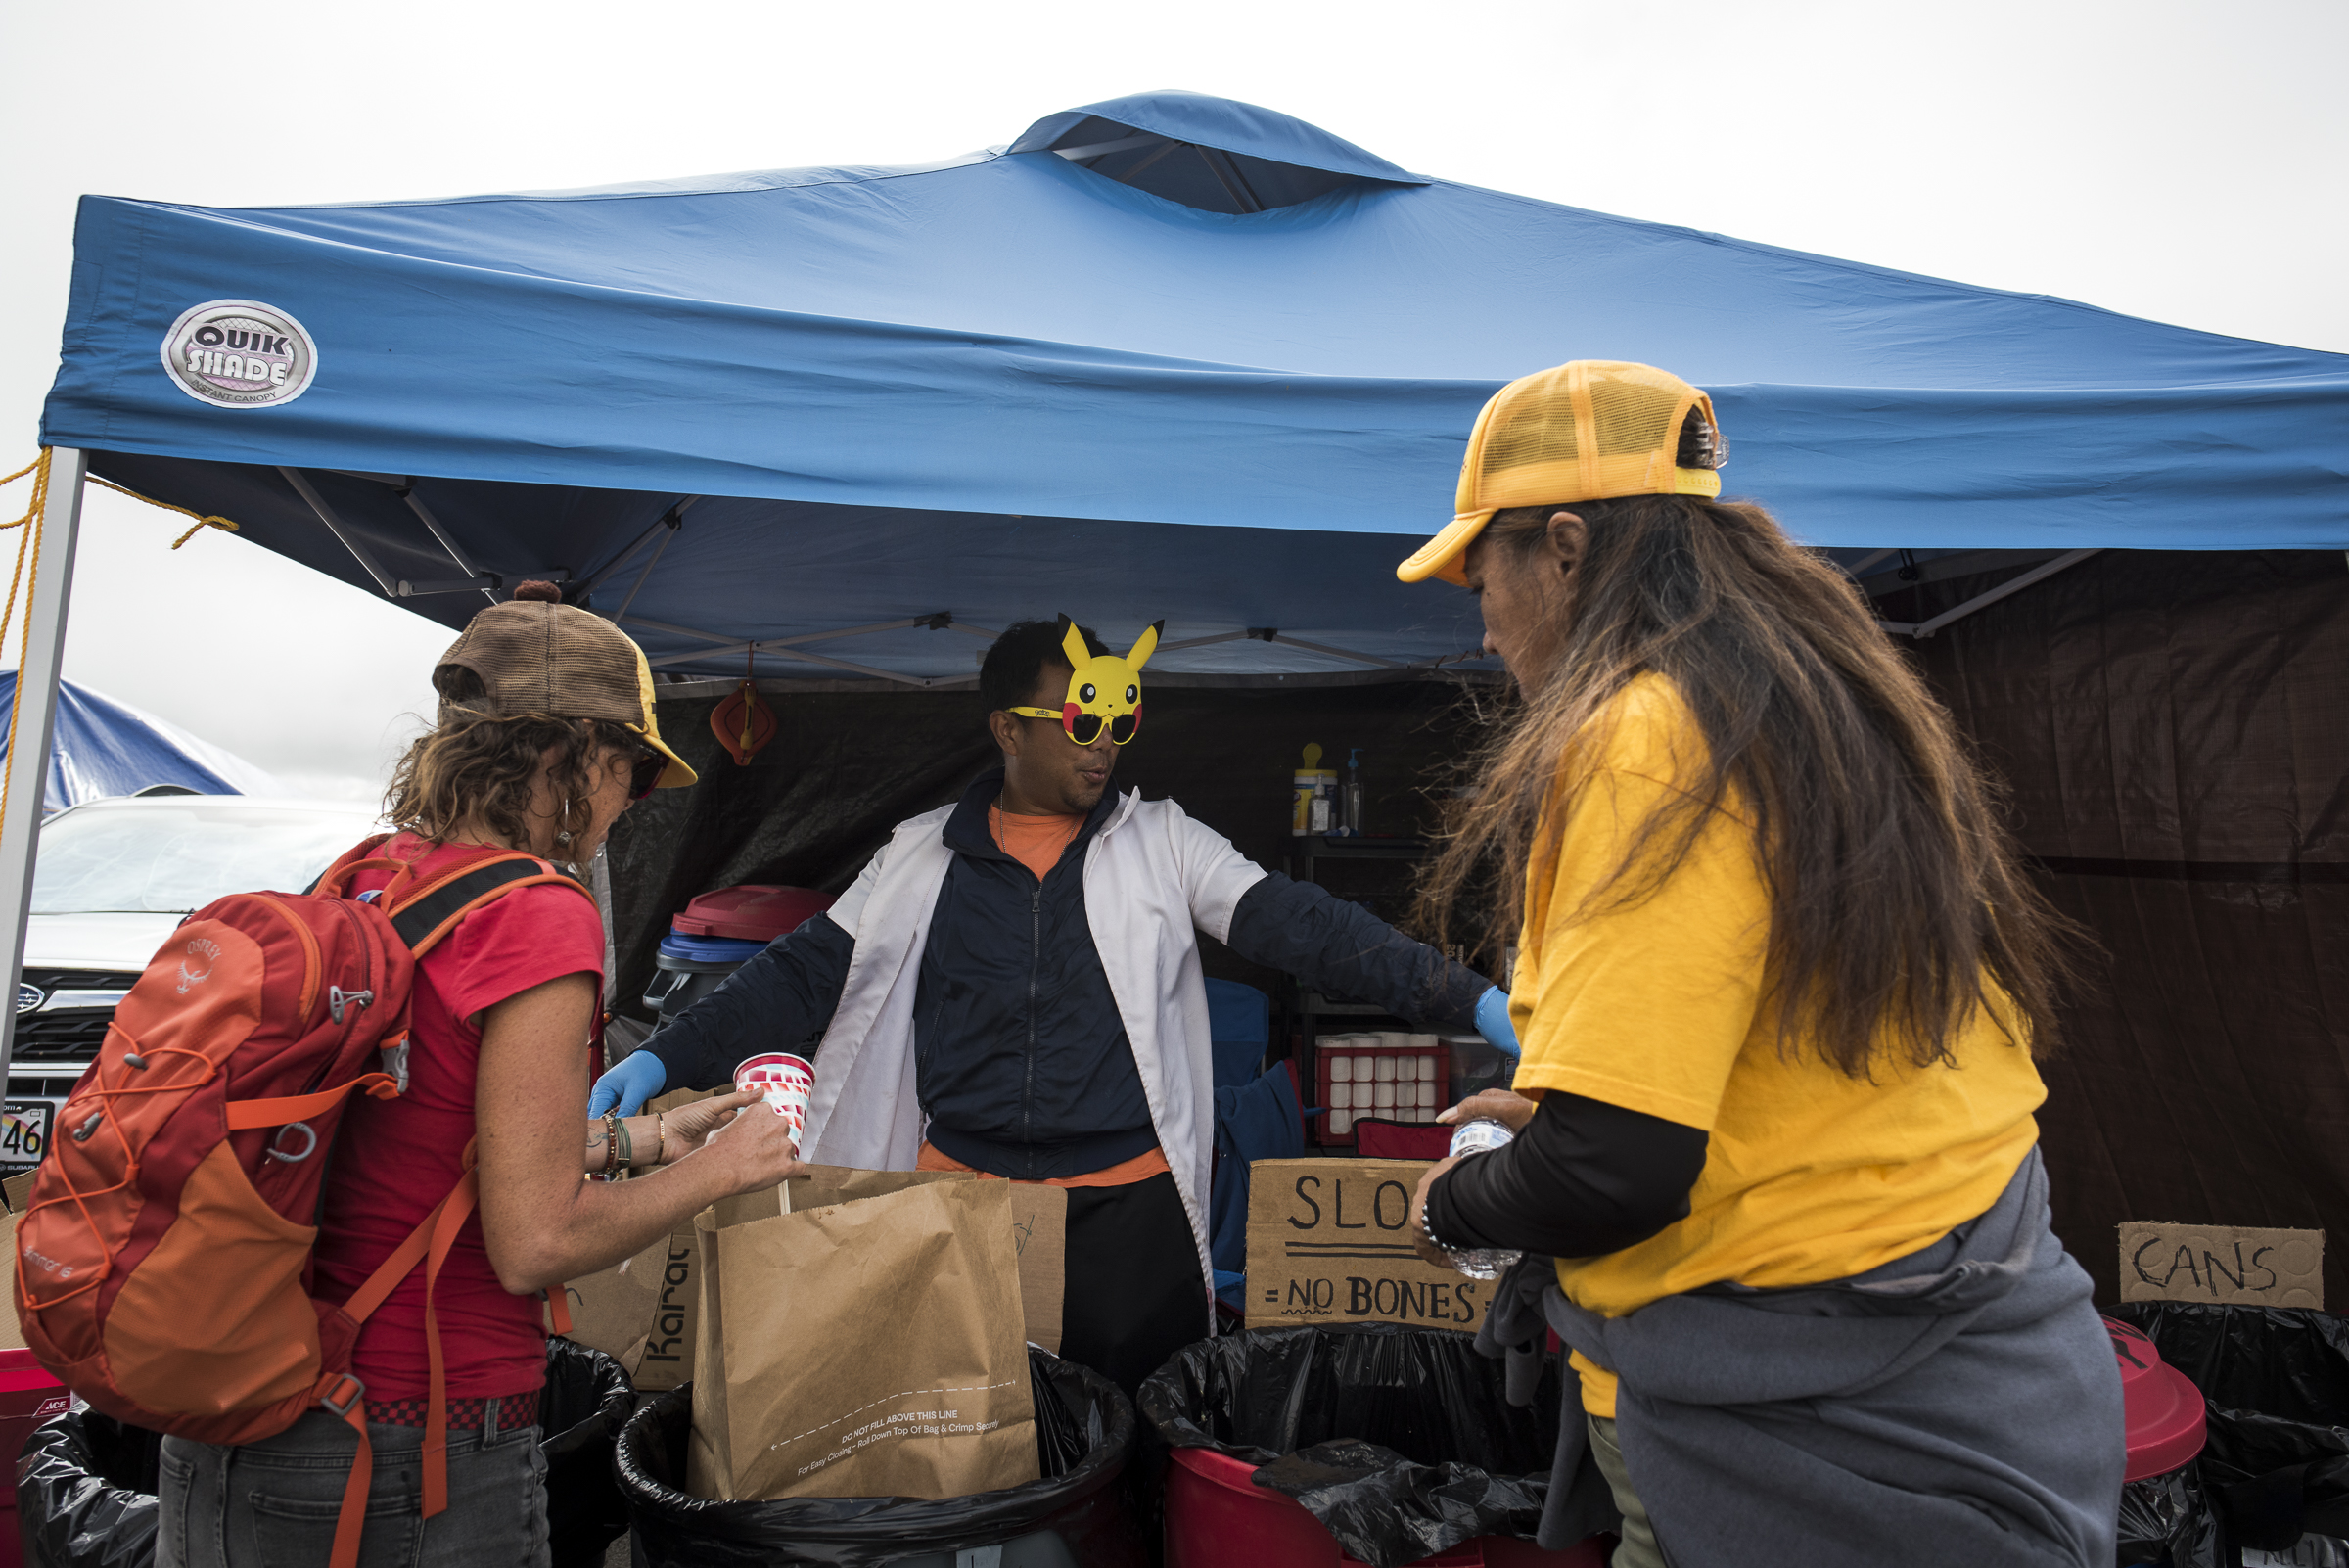 <p>As part of their mini-city, the activists have set up a recycling and trash tent.</p>